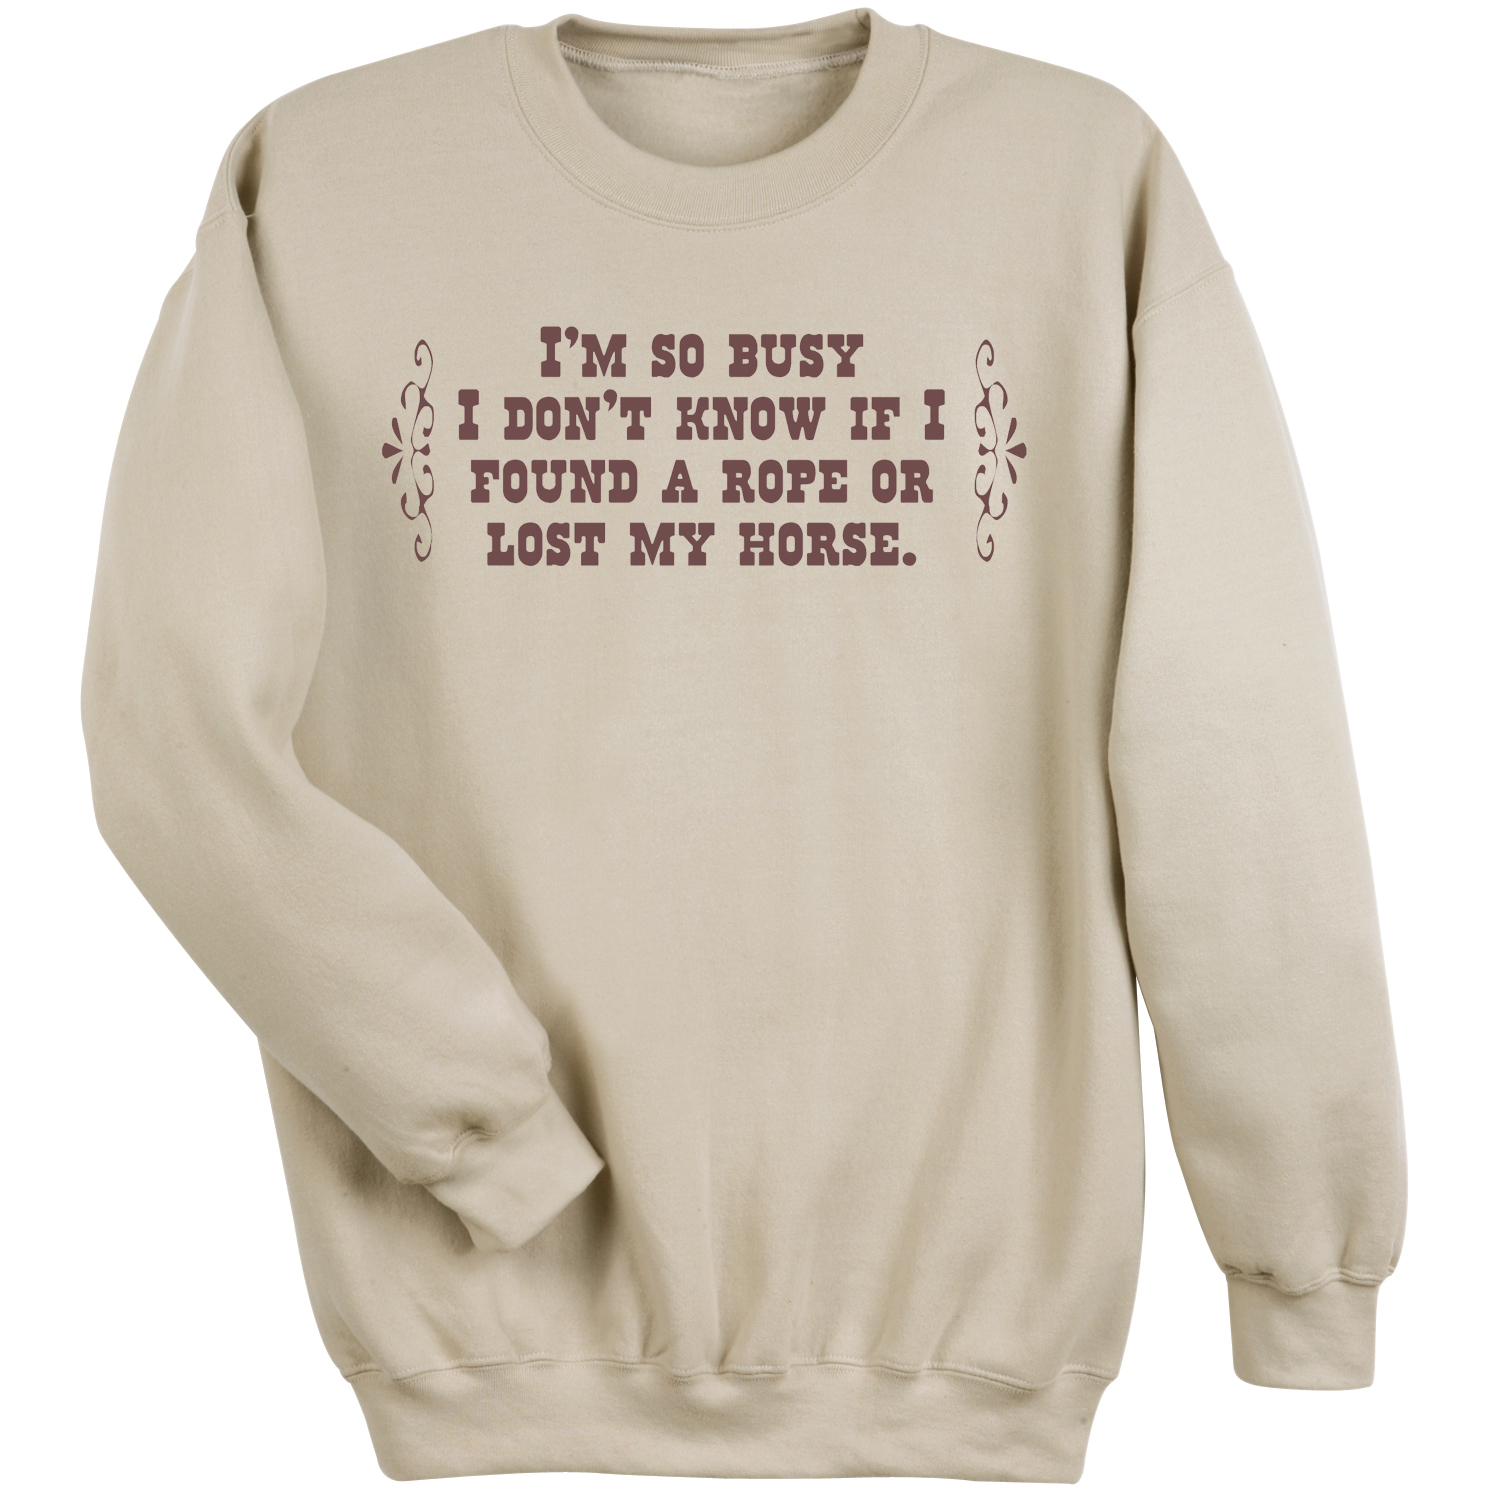 Women's I'm So Busy Sweatshirt